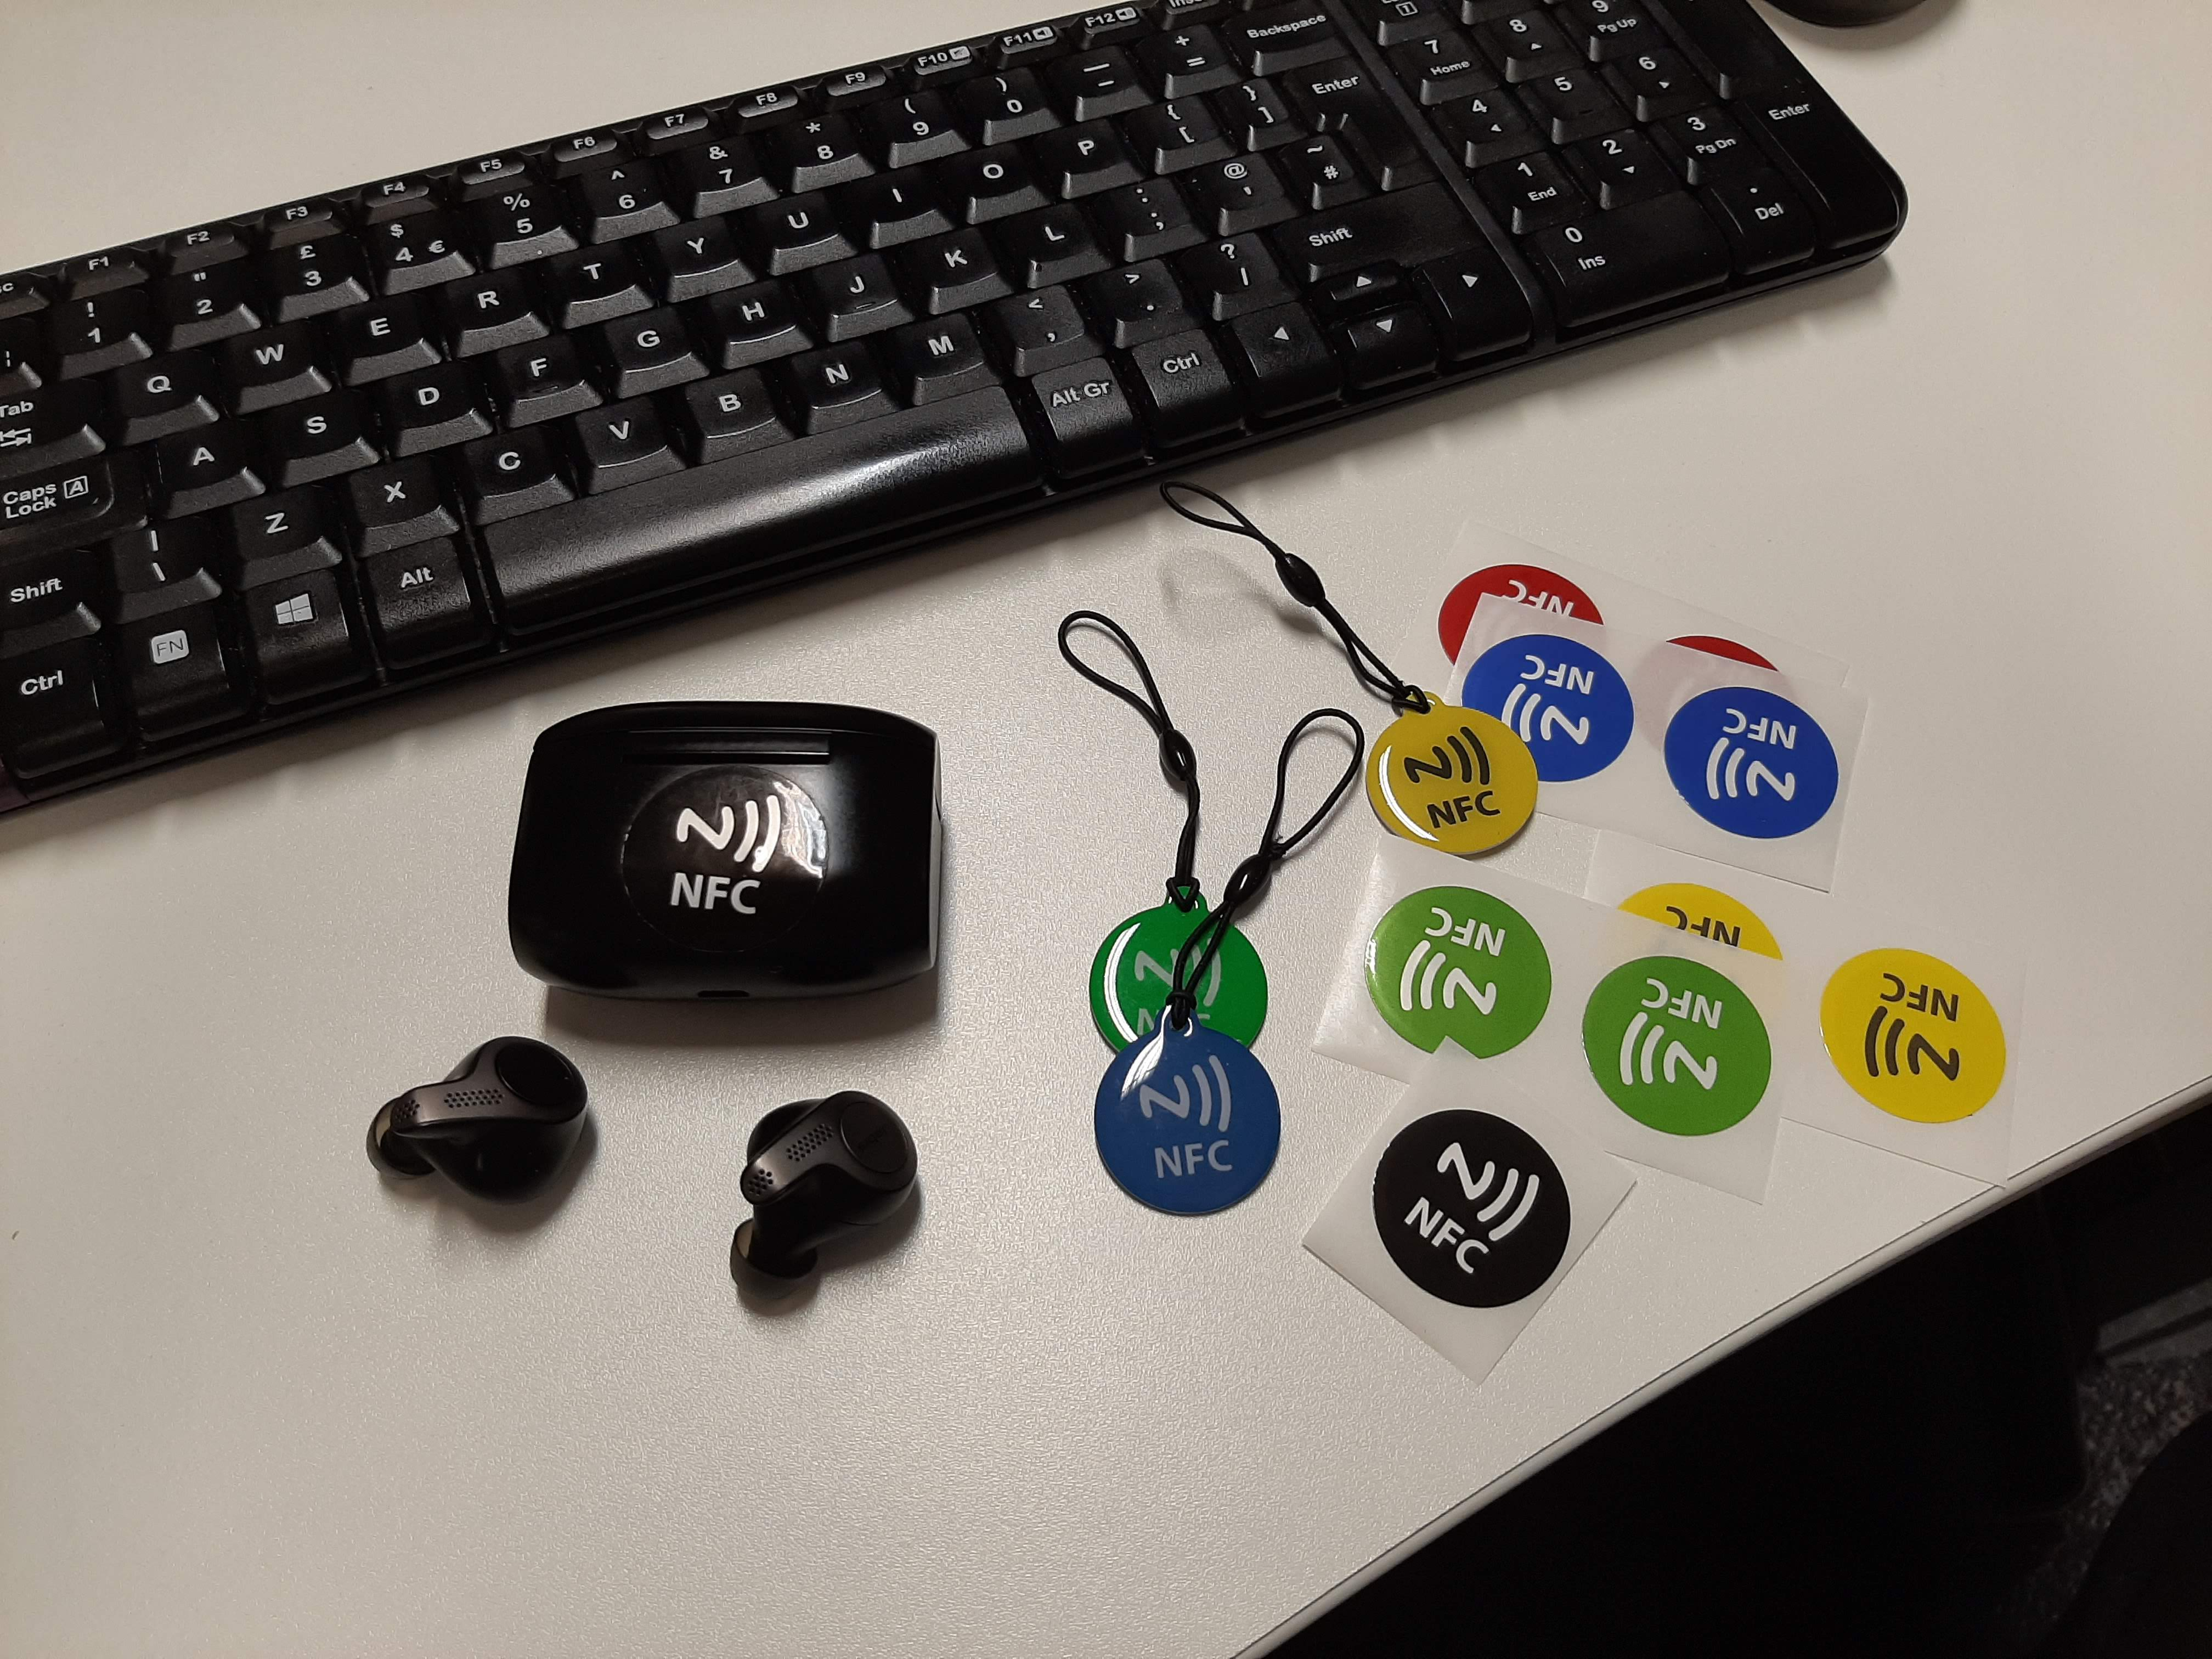 desk with various nfc tags